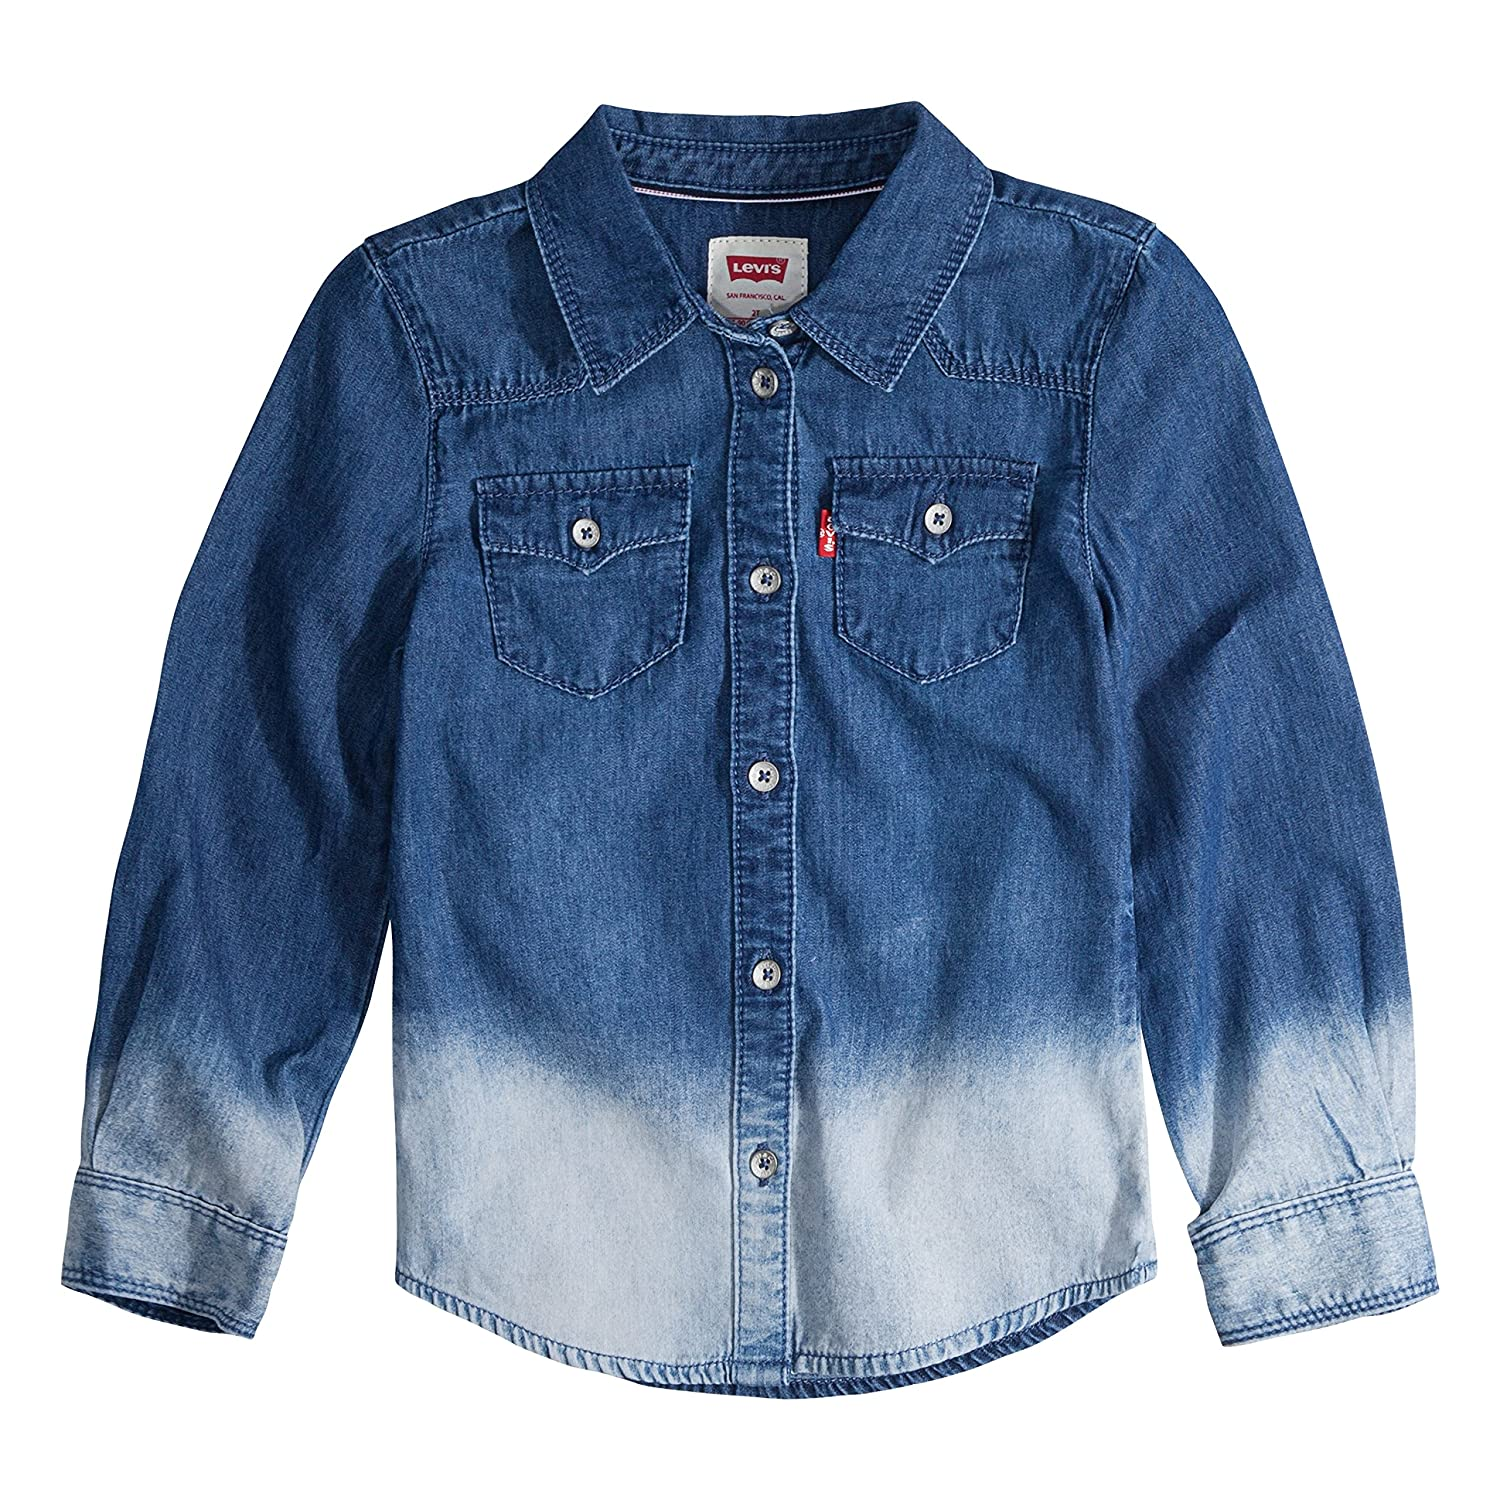 7bbf5360c Amazon.com: Levi's Girls' Toddler Long Sleeve Button Up Shirt, Blue Winds  Fade 3T: Clothing